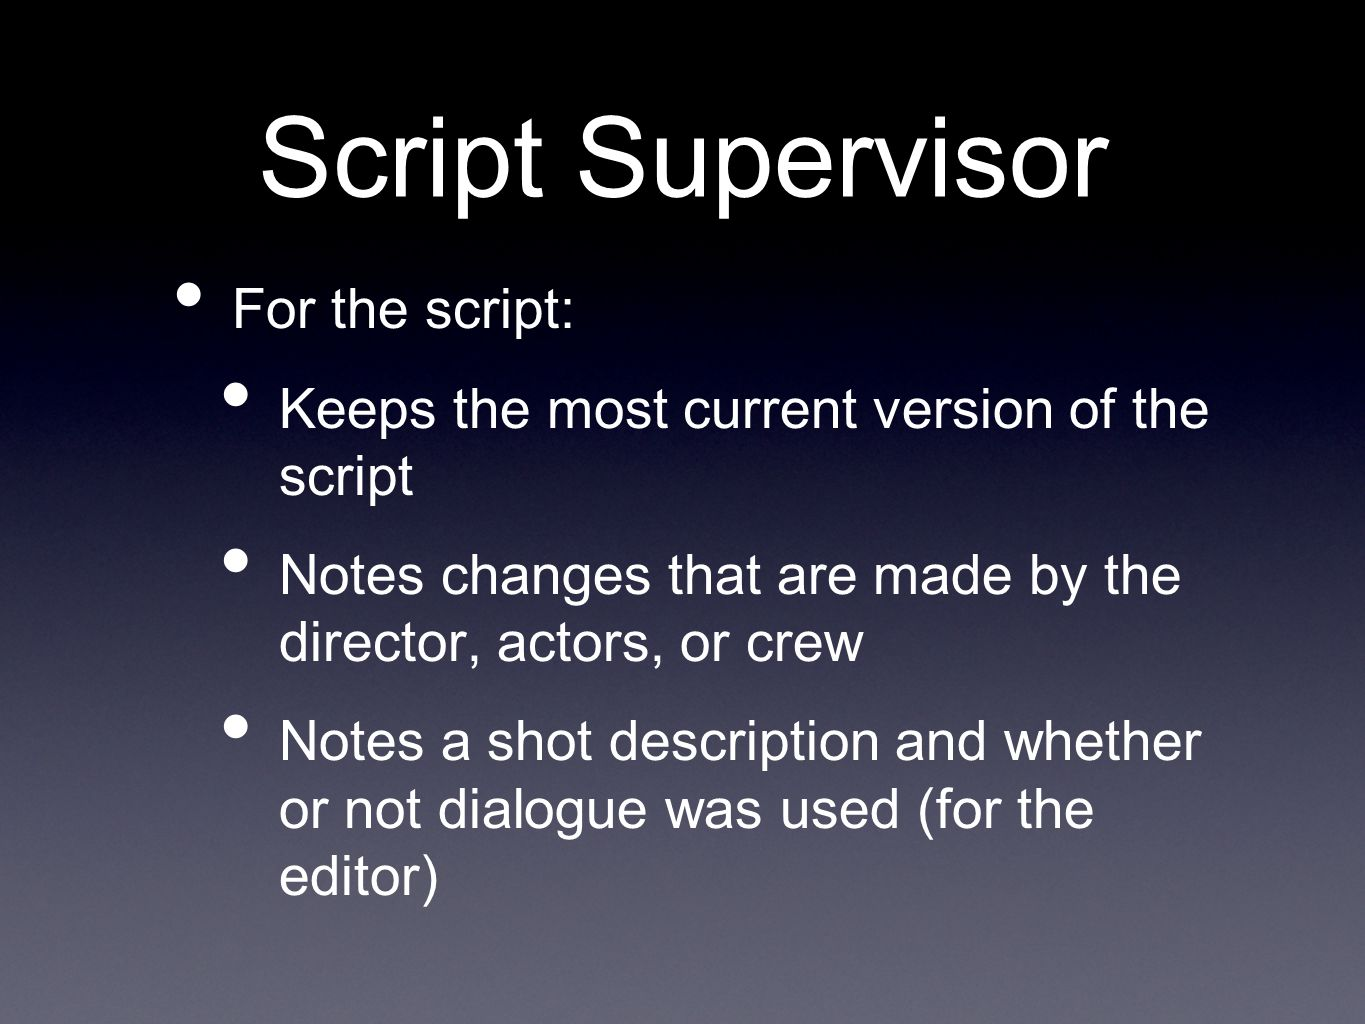 Script Supervisor For the script: Keeps the most current version of the script Notes changes that are made by the director, actors, or crew Notes a shot description and whether or not dialogue was used (for the editor)